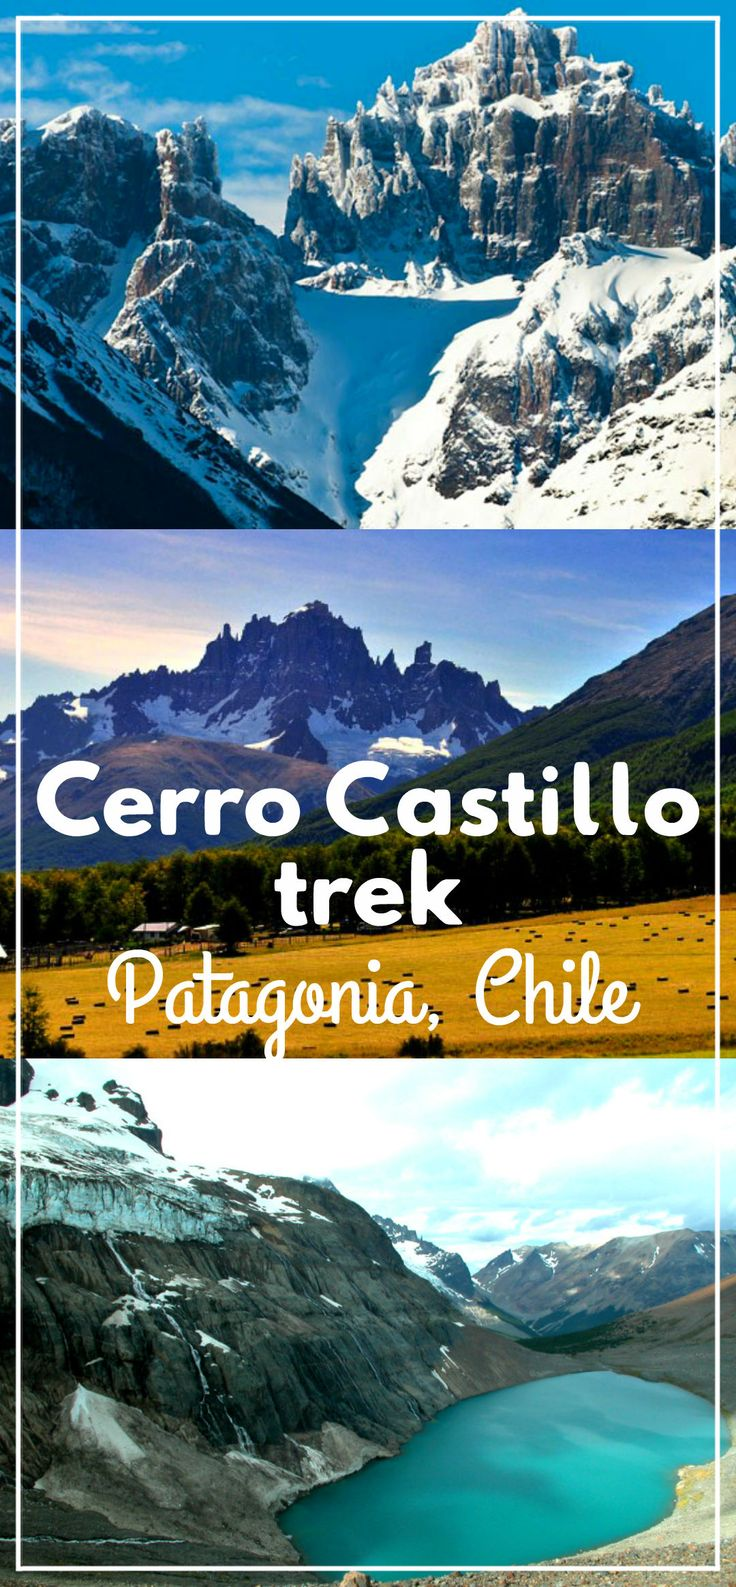 Complete guide to Cerro Castillo trek, 4-day hike in Patagonia, Chile. Itinerary, how to get by public transport, route, map, campsites, budget.